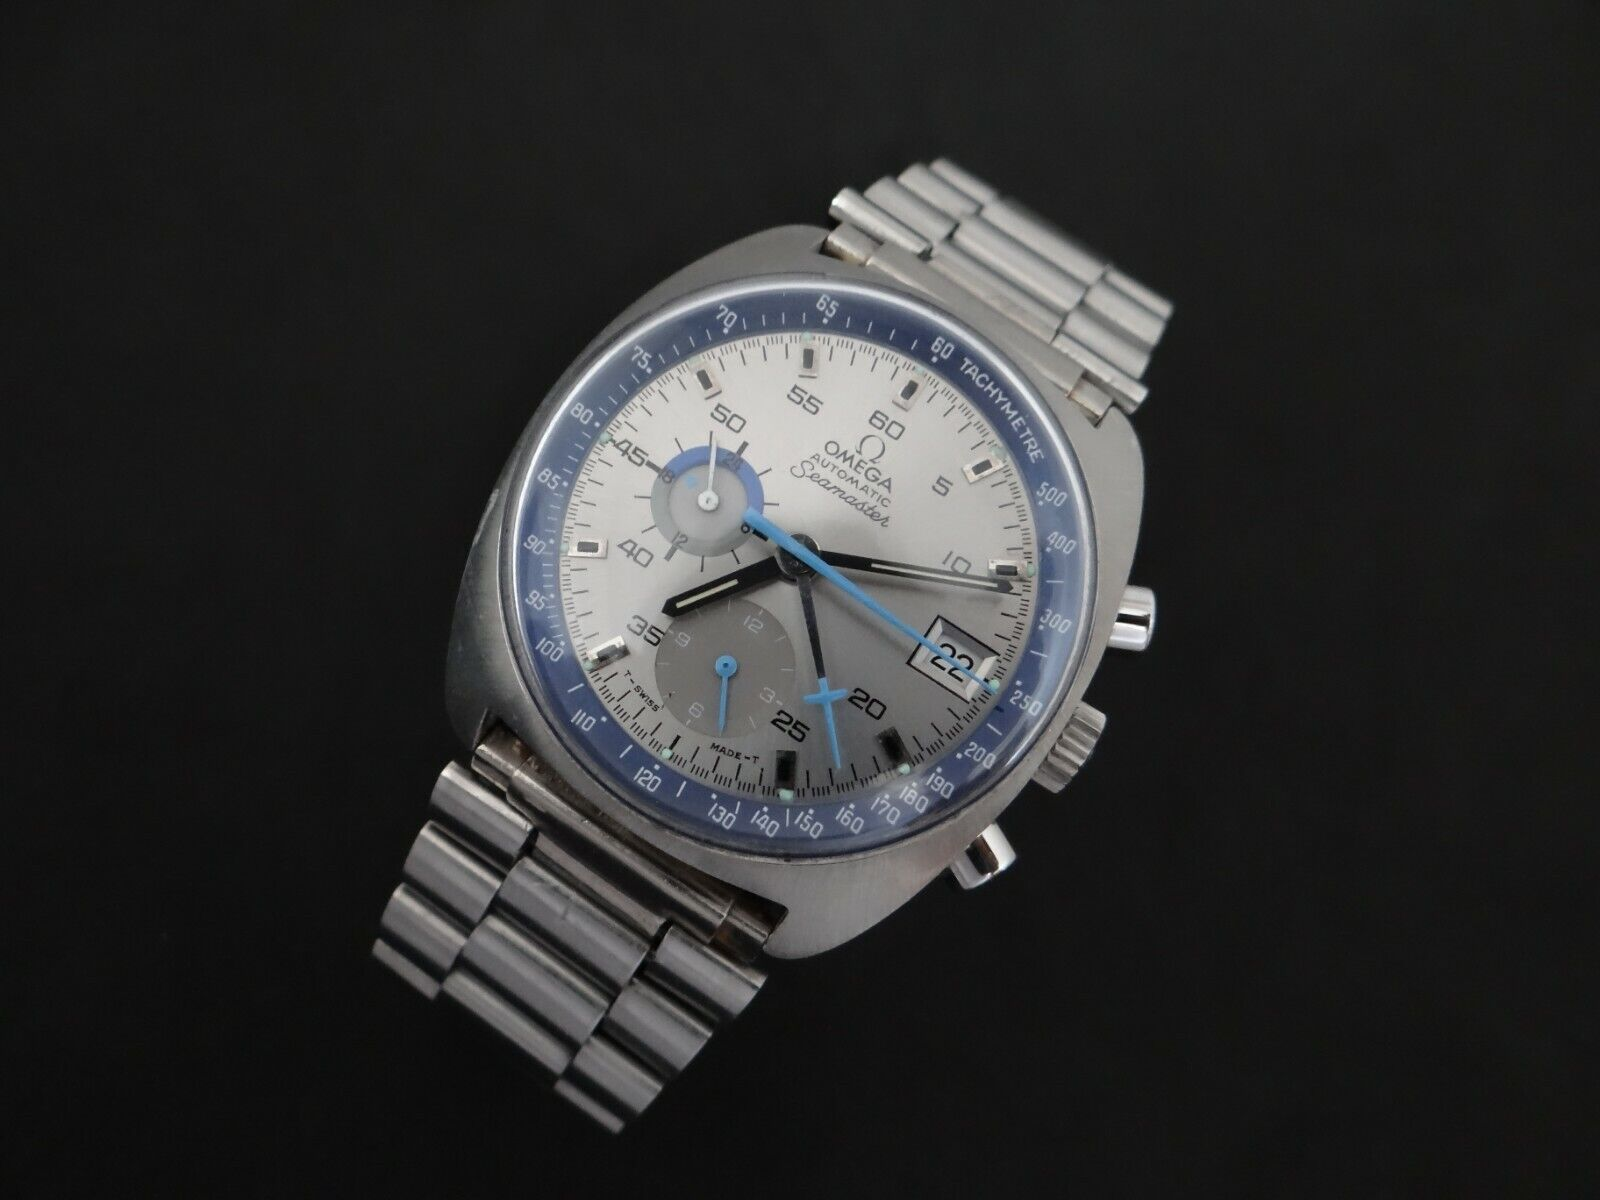 VINTAGE OMEGA SEAMASTER CHRONOGRAPH AUTOMATIC CAL 1040  REF 176.007 - watch picture 1